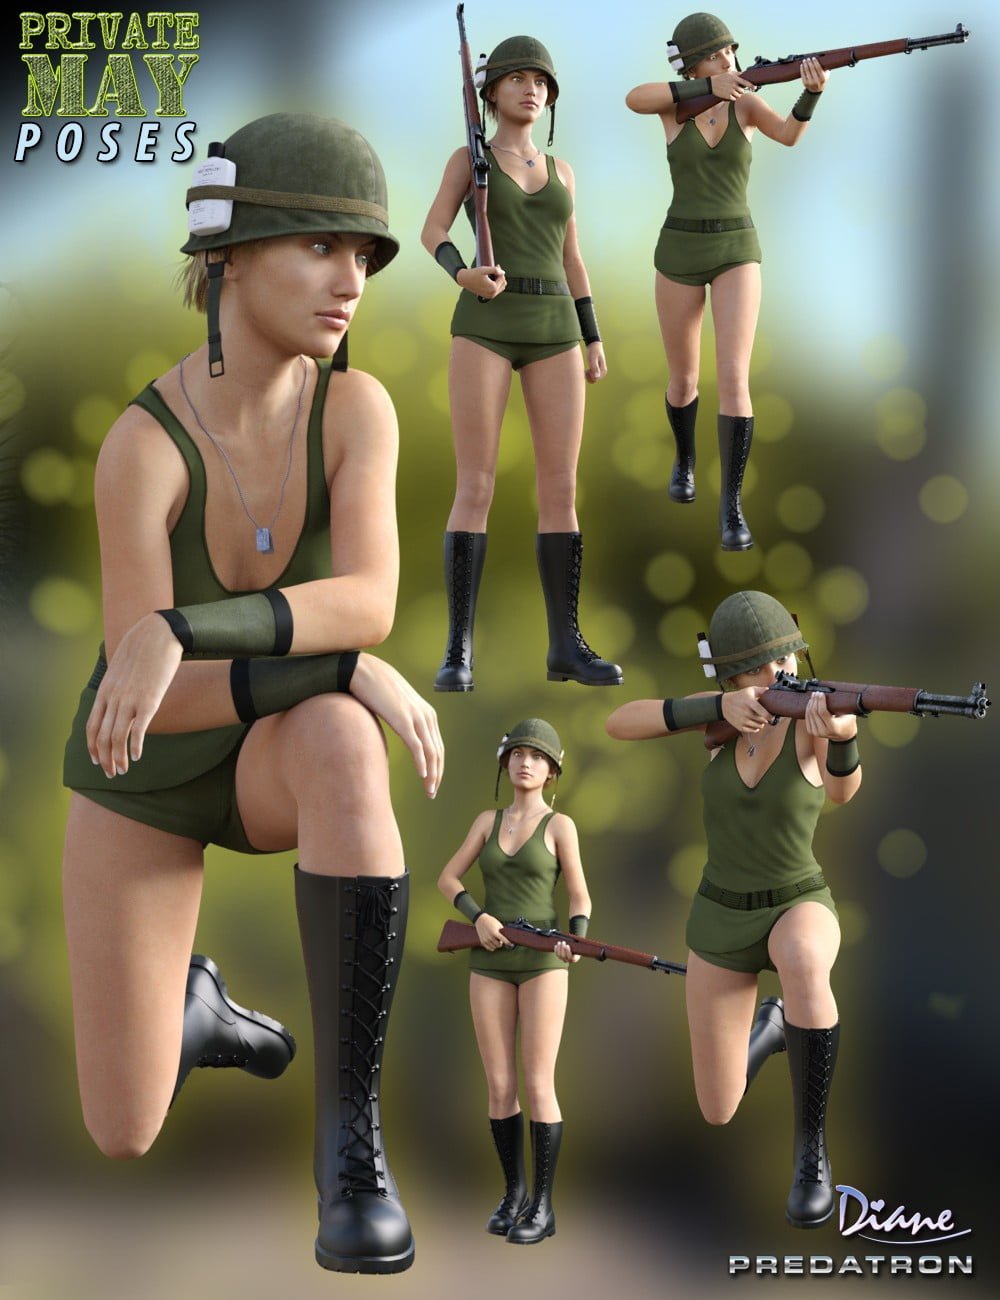 02-private-may-poses-for-genesis-3-females-daz3d